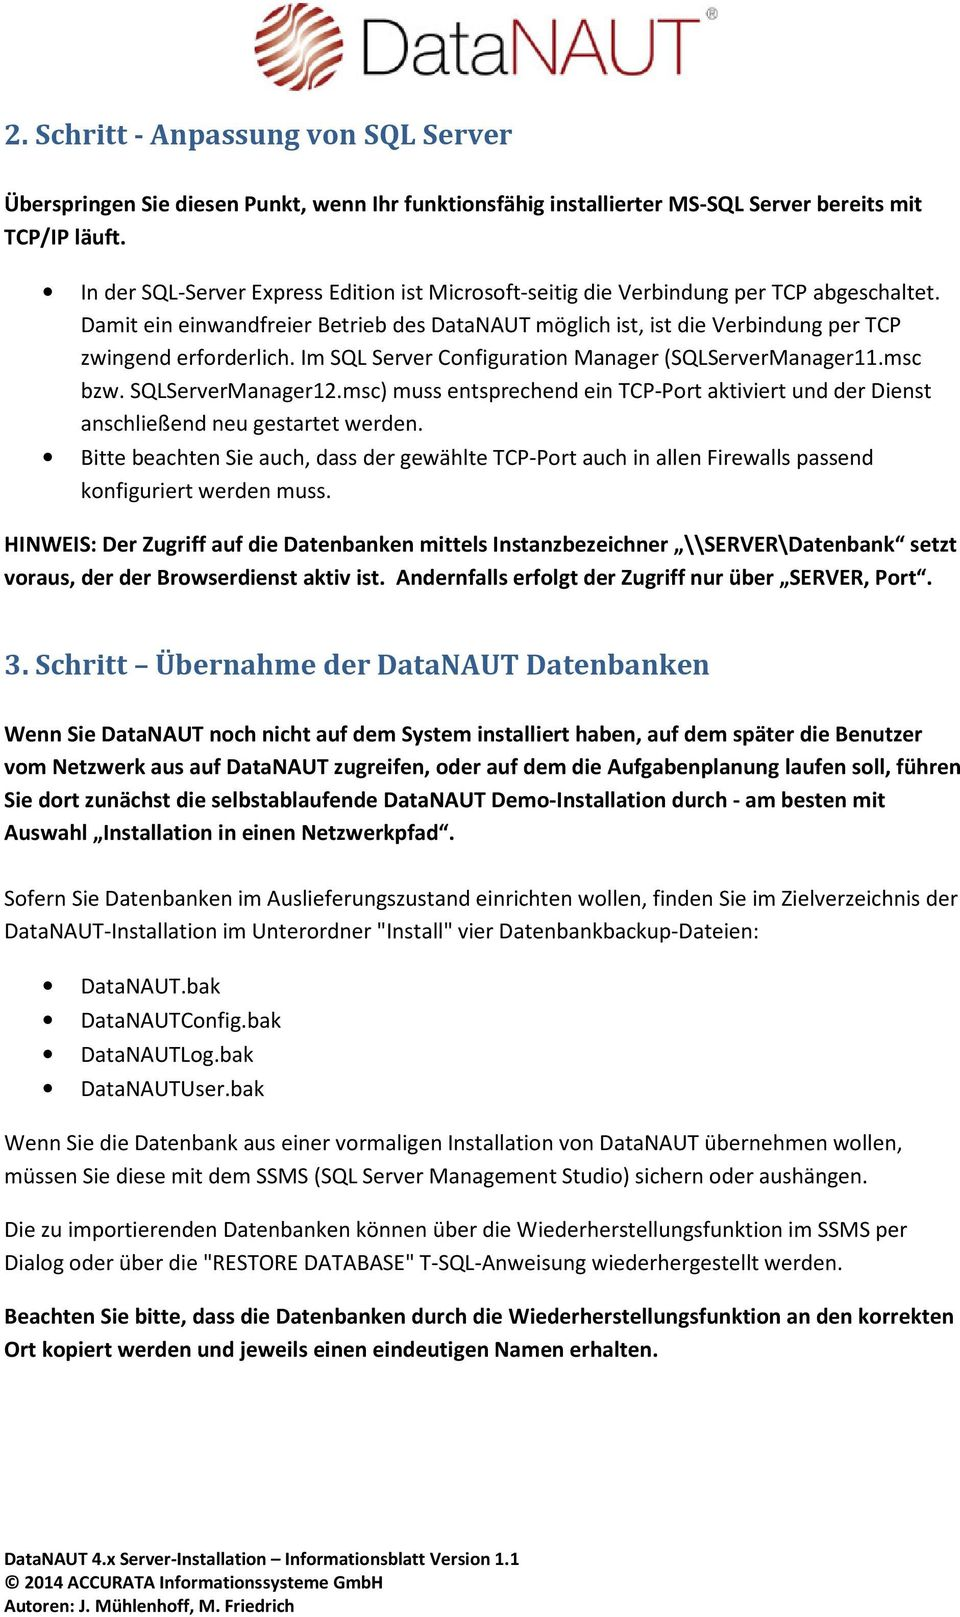 Im SQL Server Configuration Manager (SQLServerManager11.msc bzw. SQLServerManager12.msc) muss entsprechend ein TCP-Port aktiviert und der Dienst anschließend neu gestartet werden.